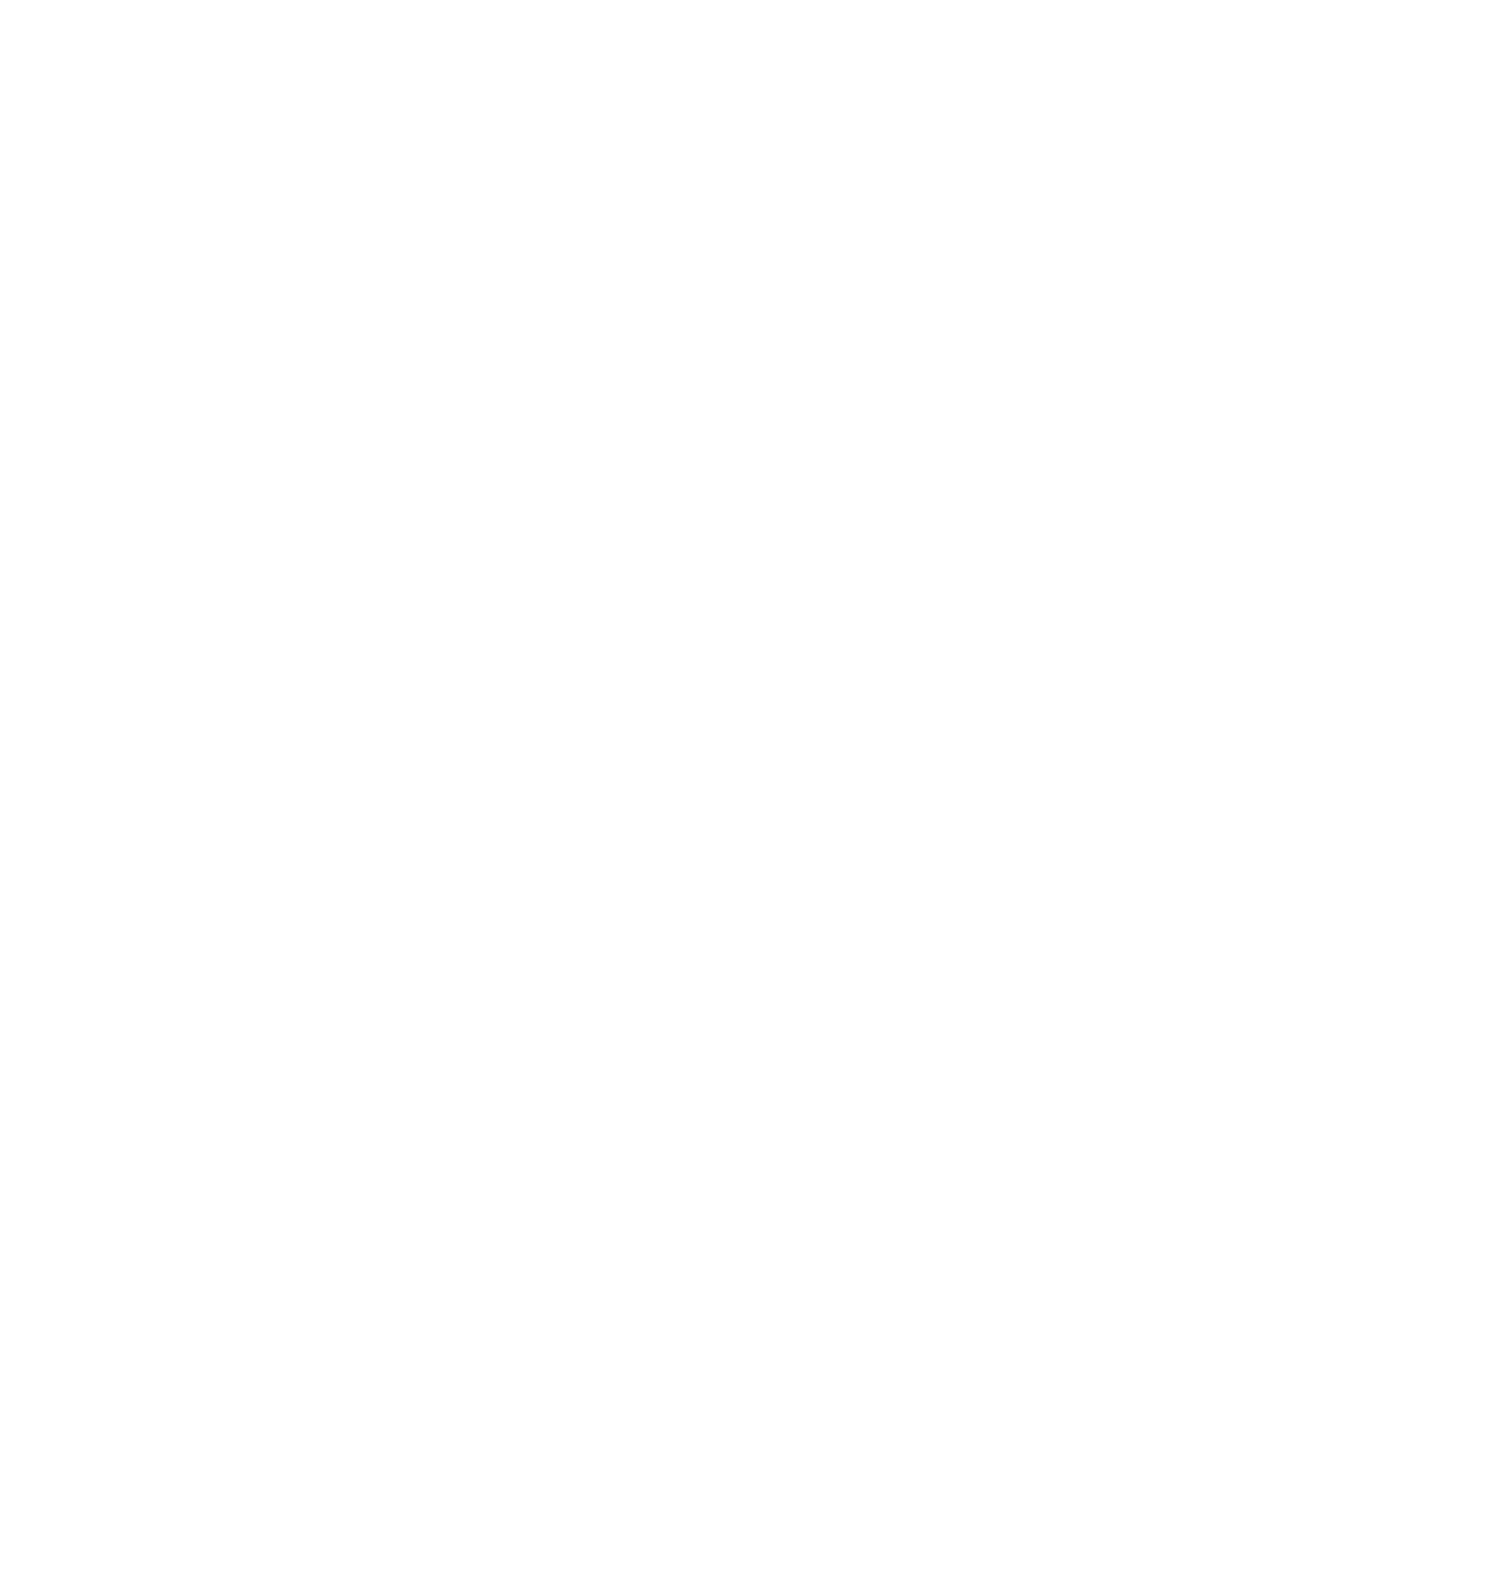 I'm An Athlete